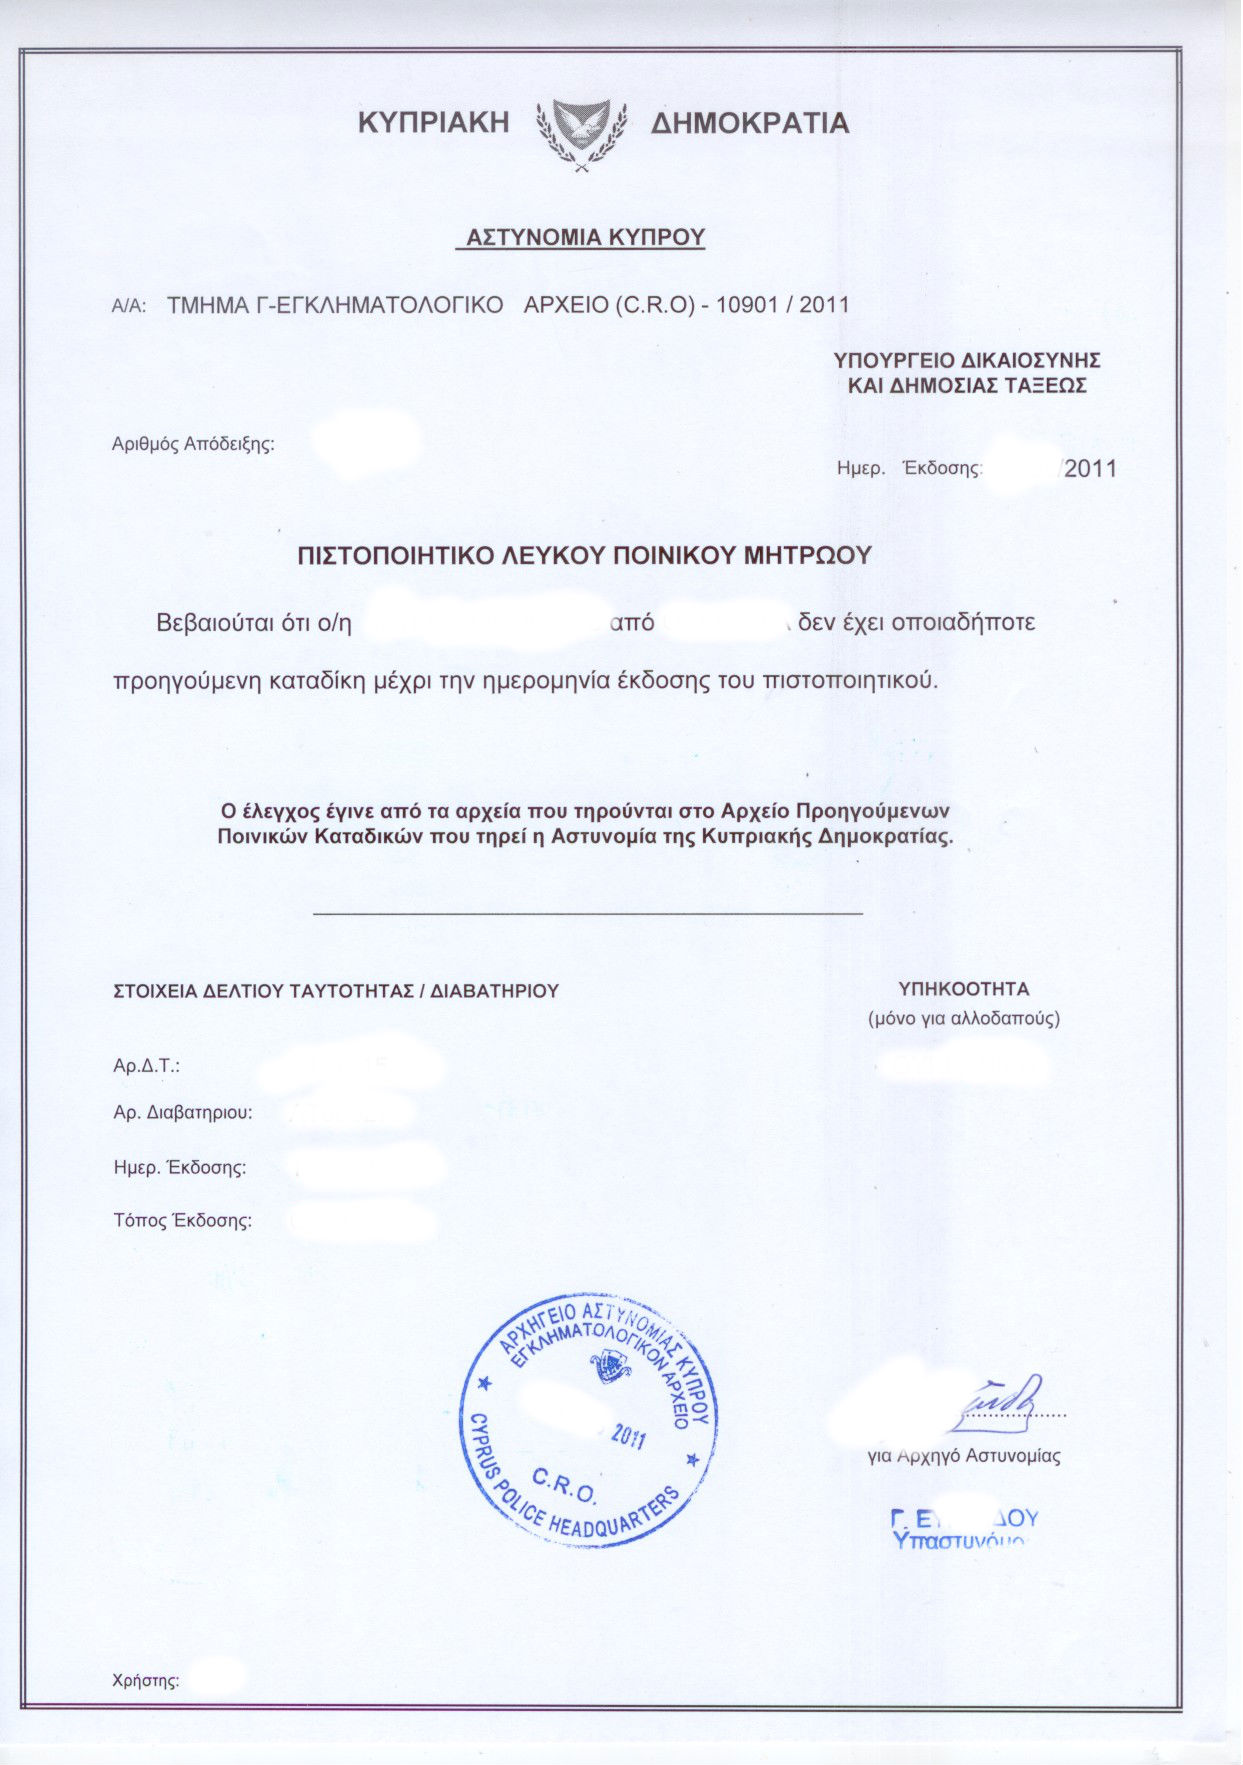 Criminal record certificate or police clearance certificate in cyprus zoom thecheapjerseys Image collections